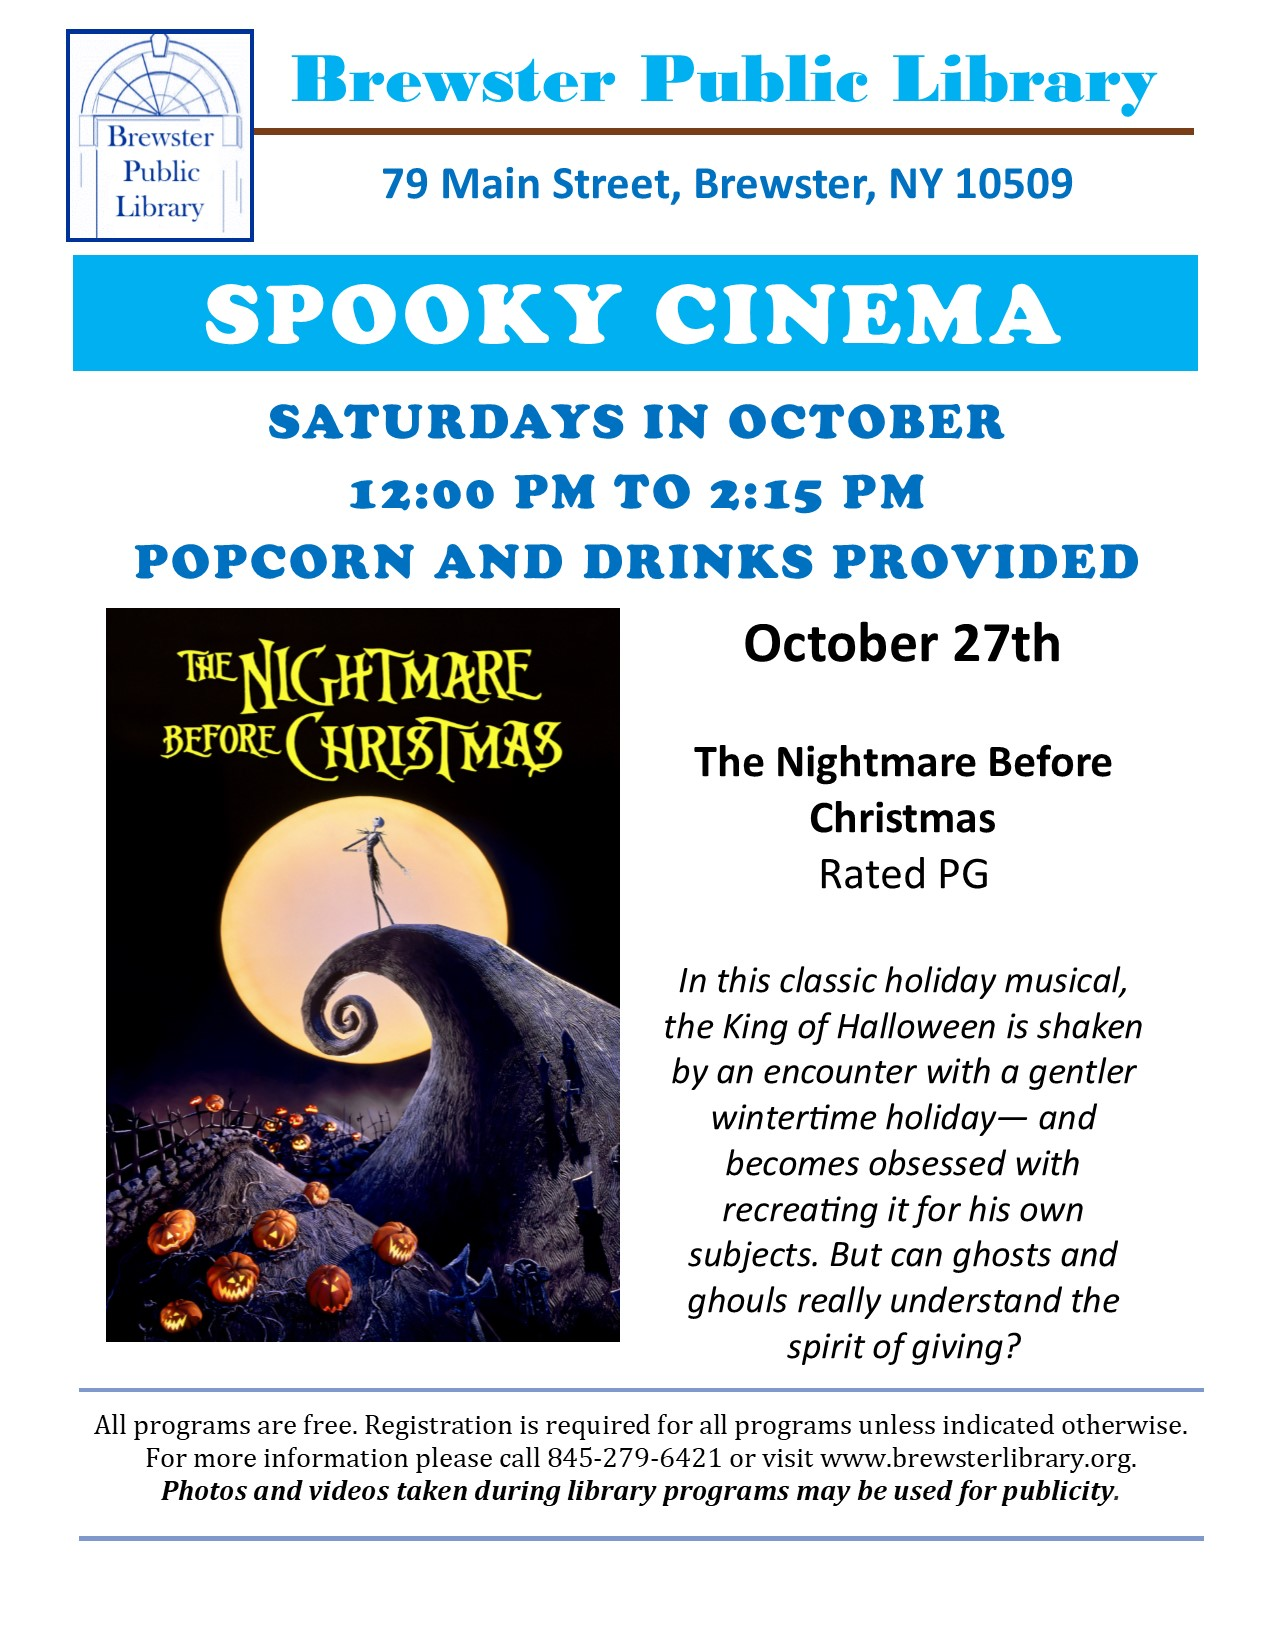 The Nightmare Before Christmas at Brewster Public Library October 27